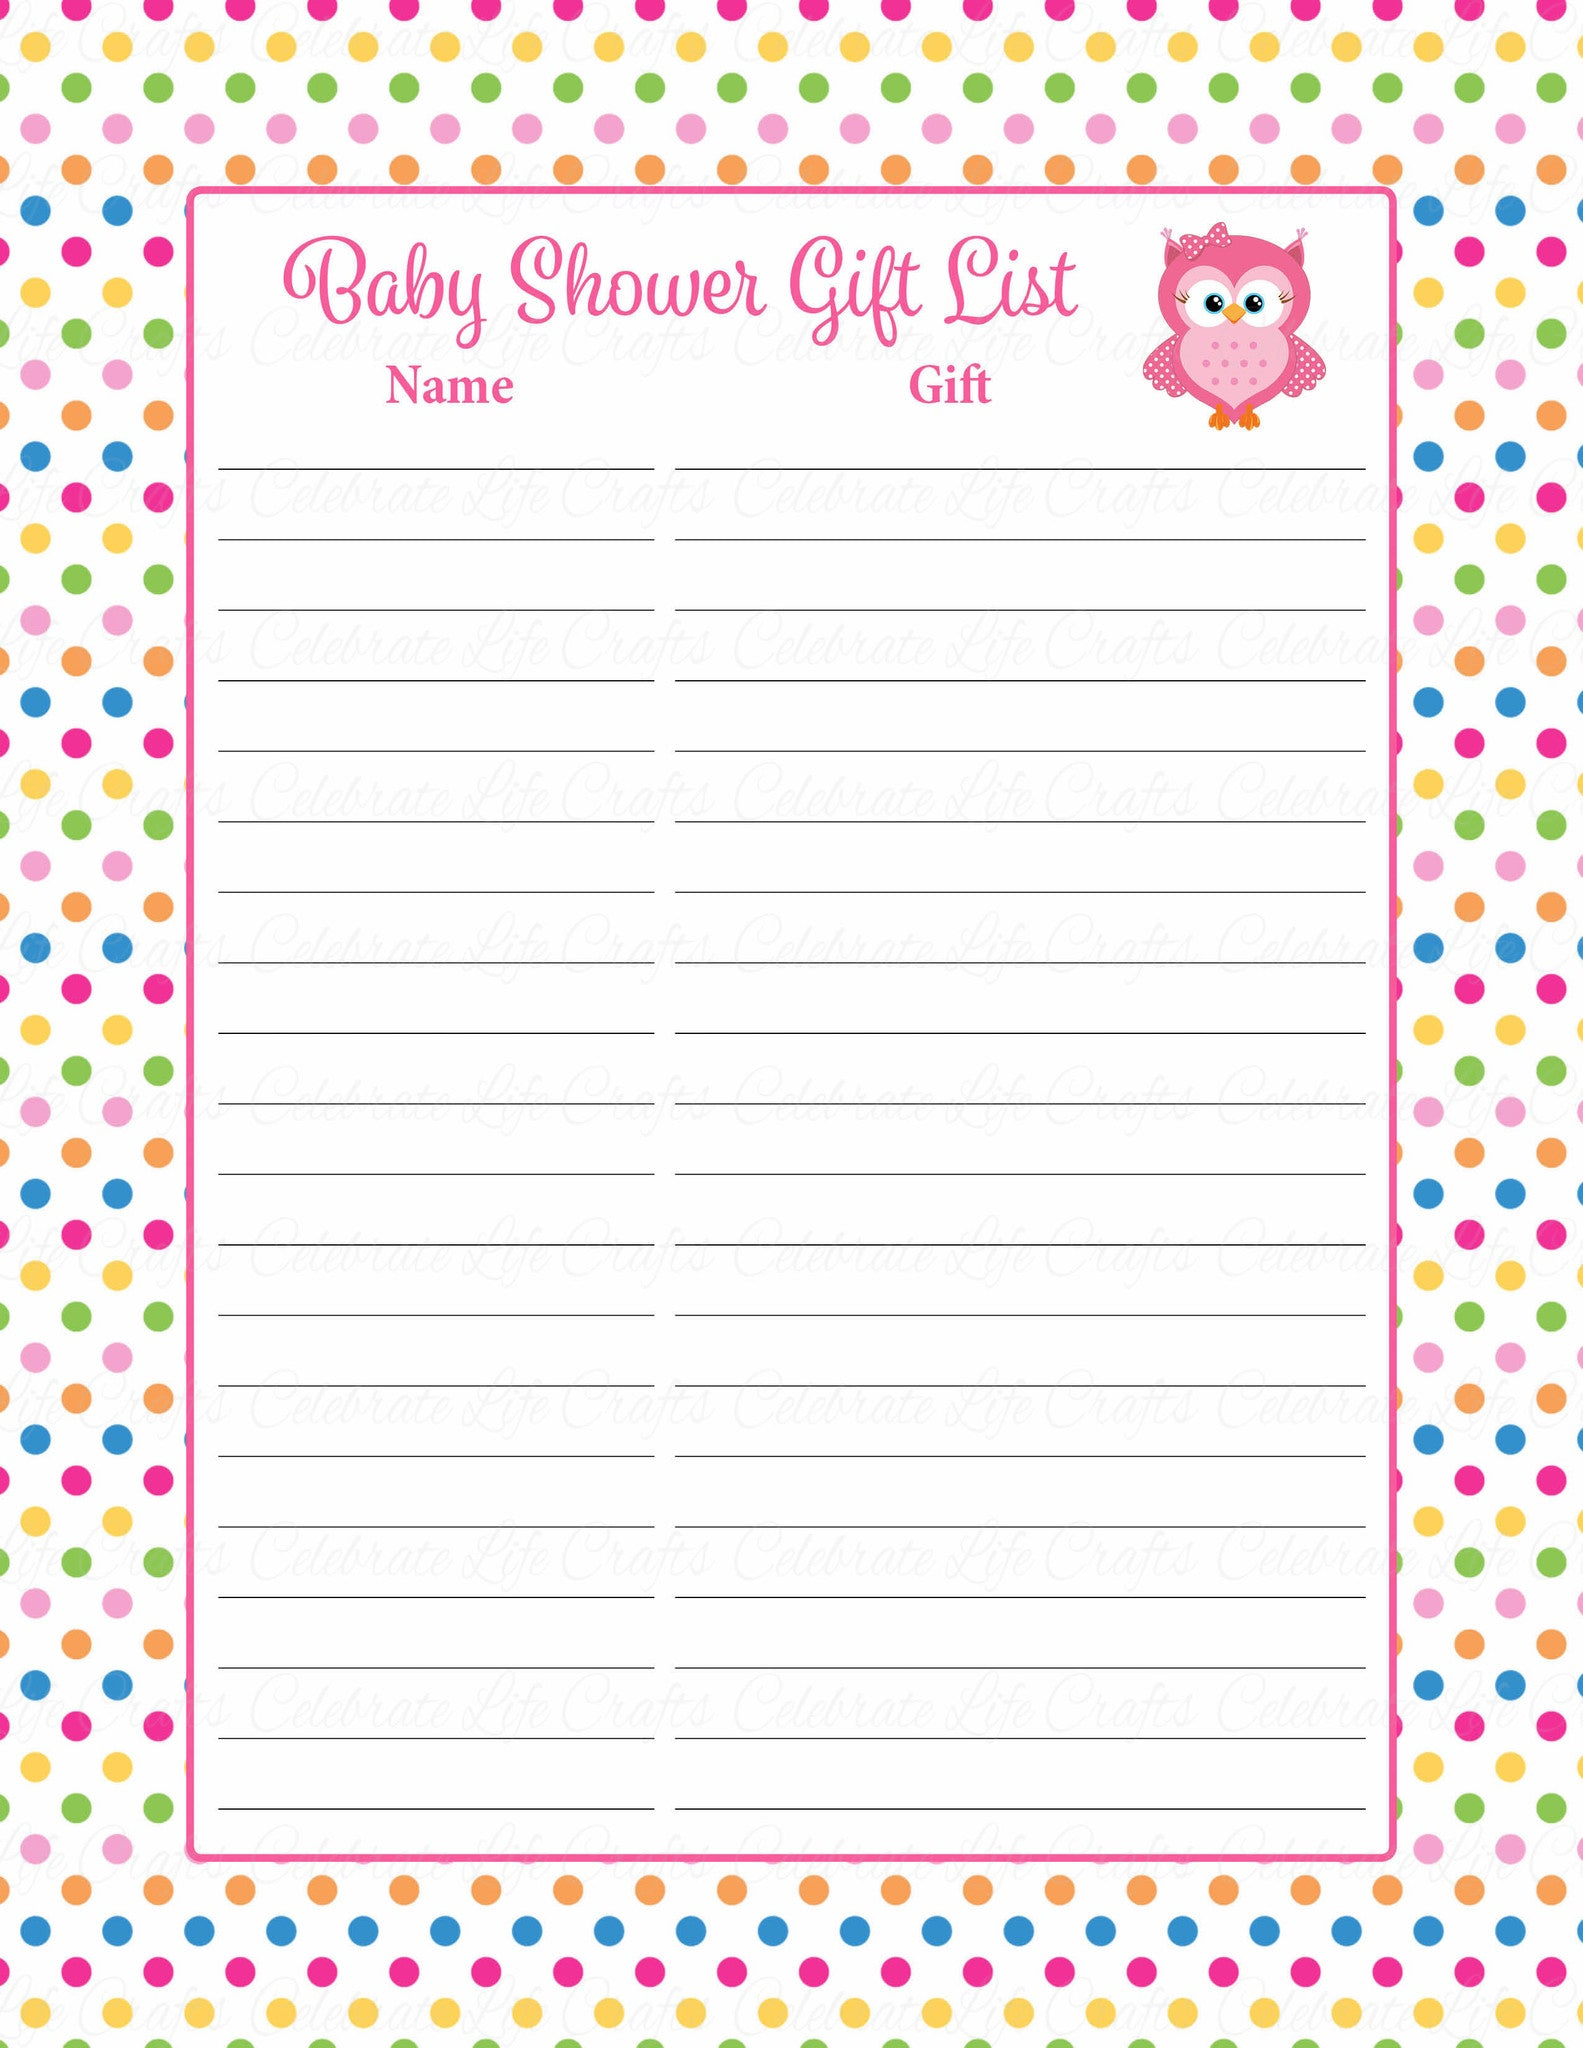 Baby Shower Gift List Set - Printable Download - Rainbow Polka Baby Shower  Decorations - B2009